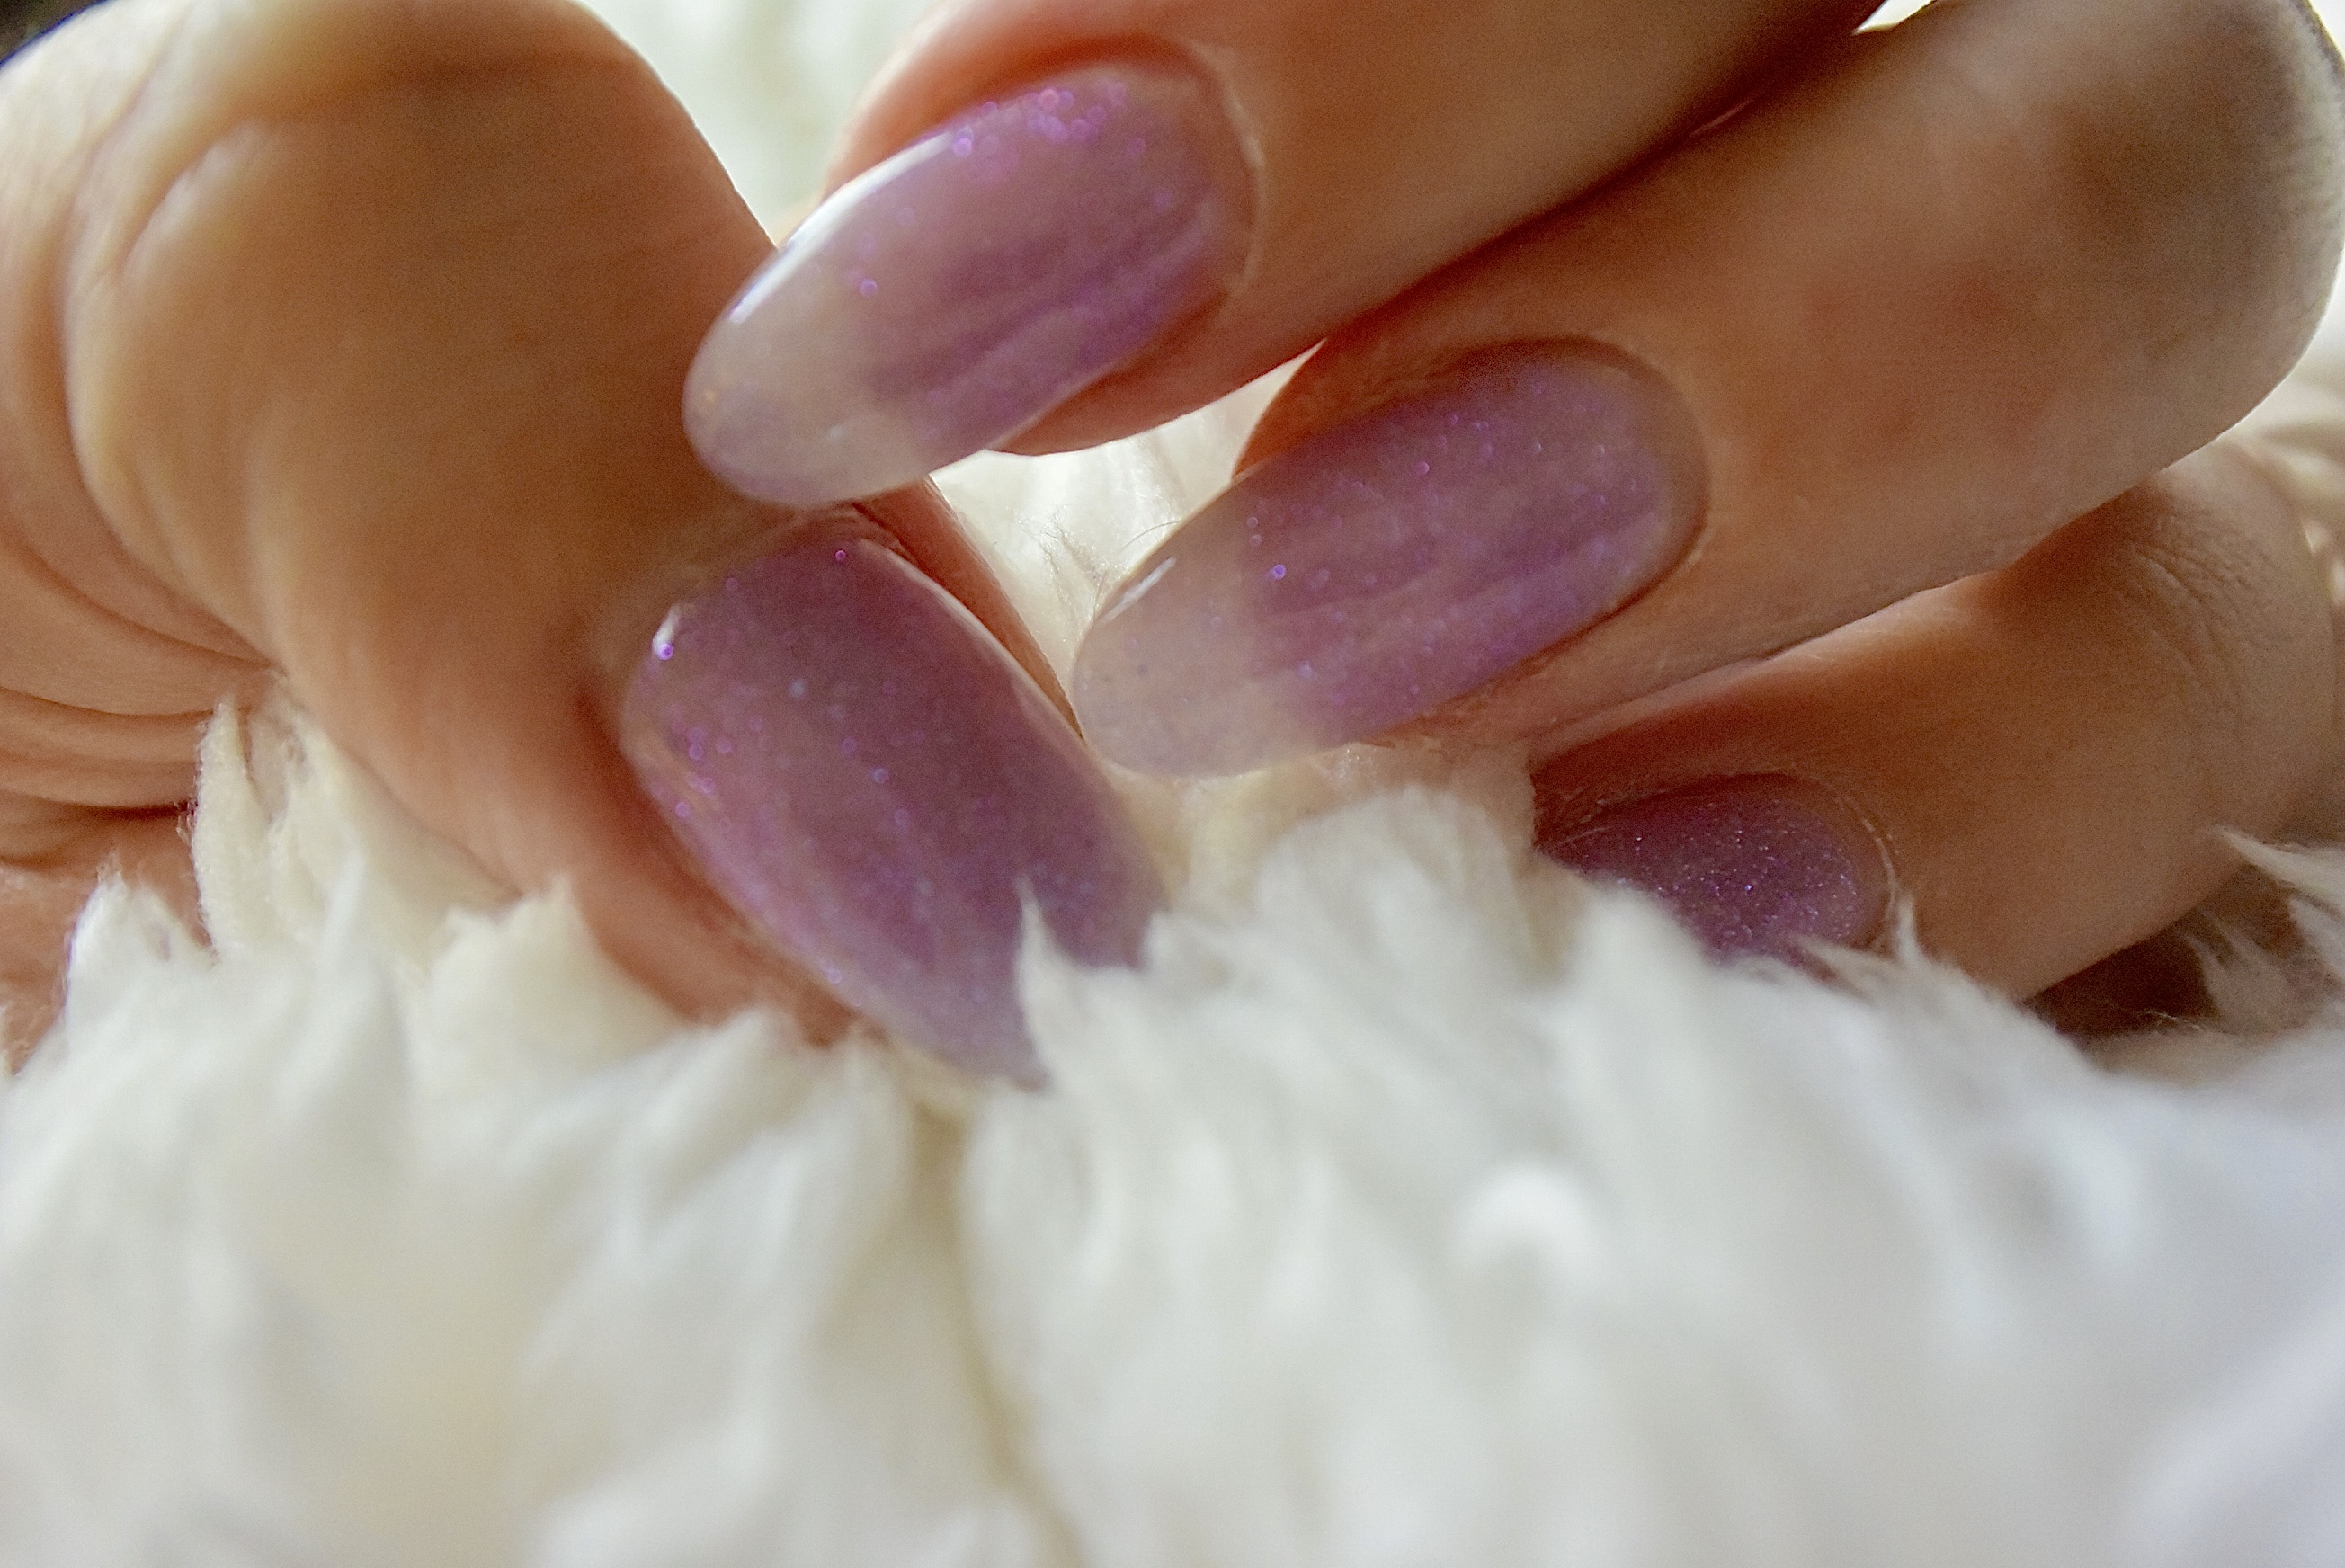 All About SNS Nails - The Beauty Section